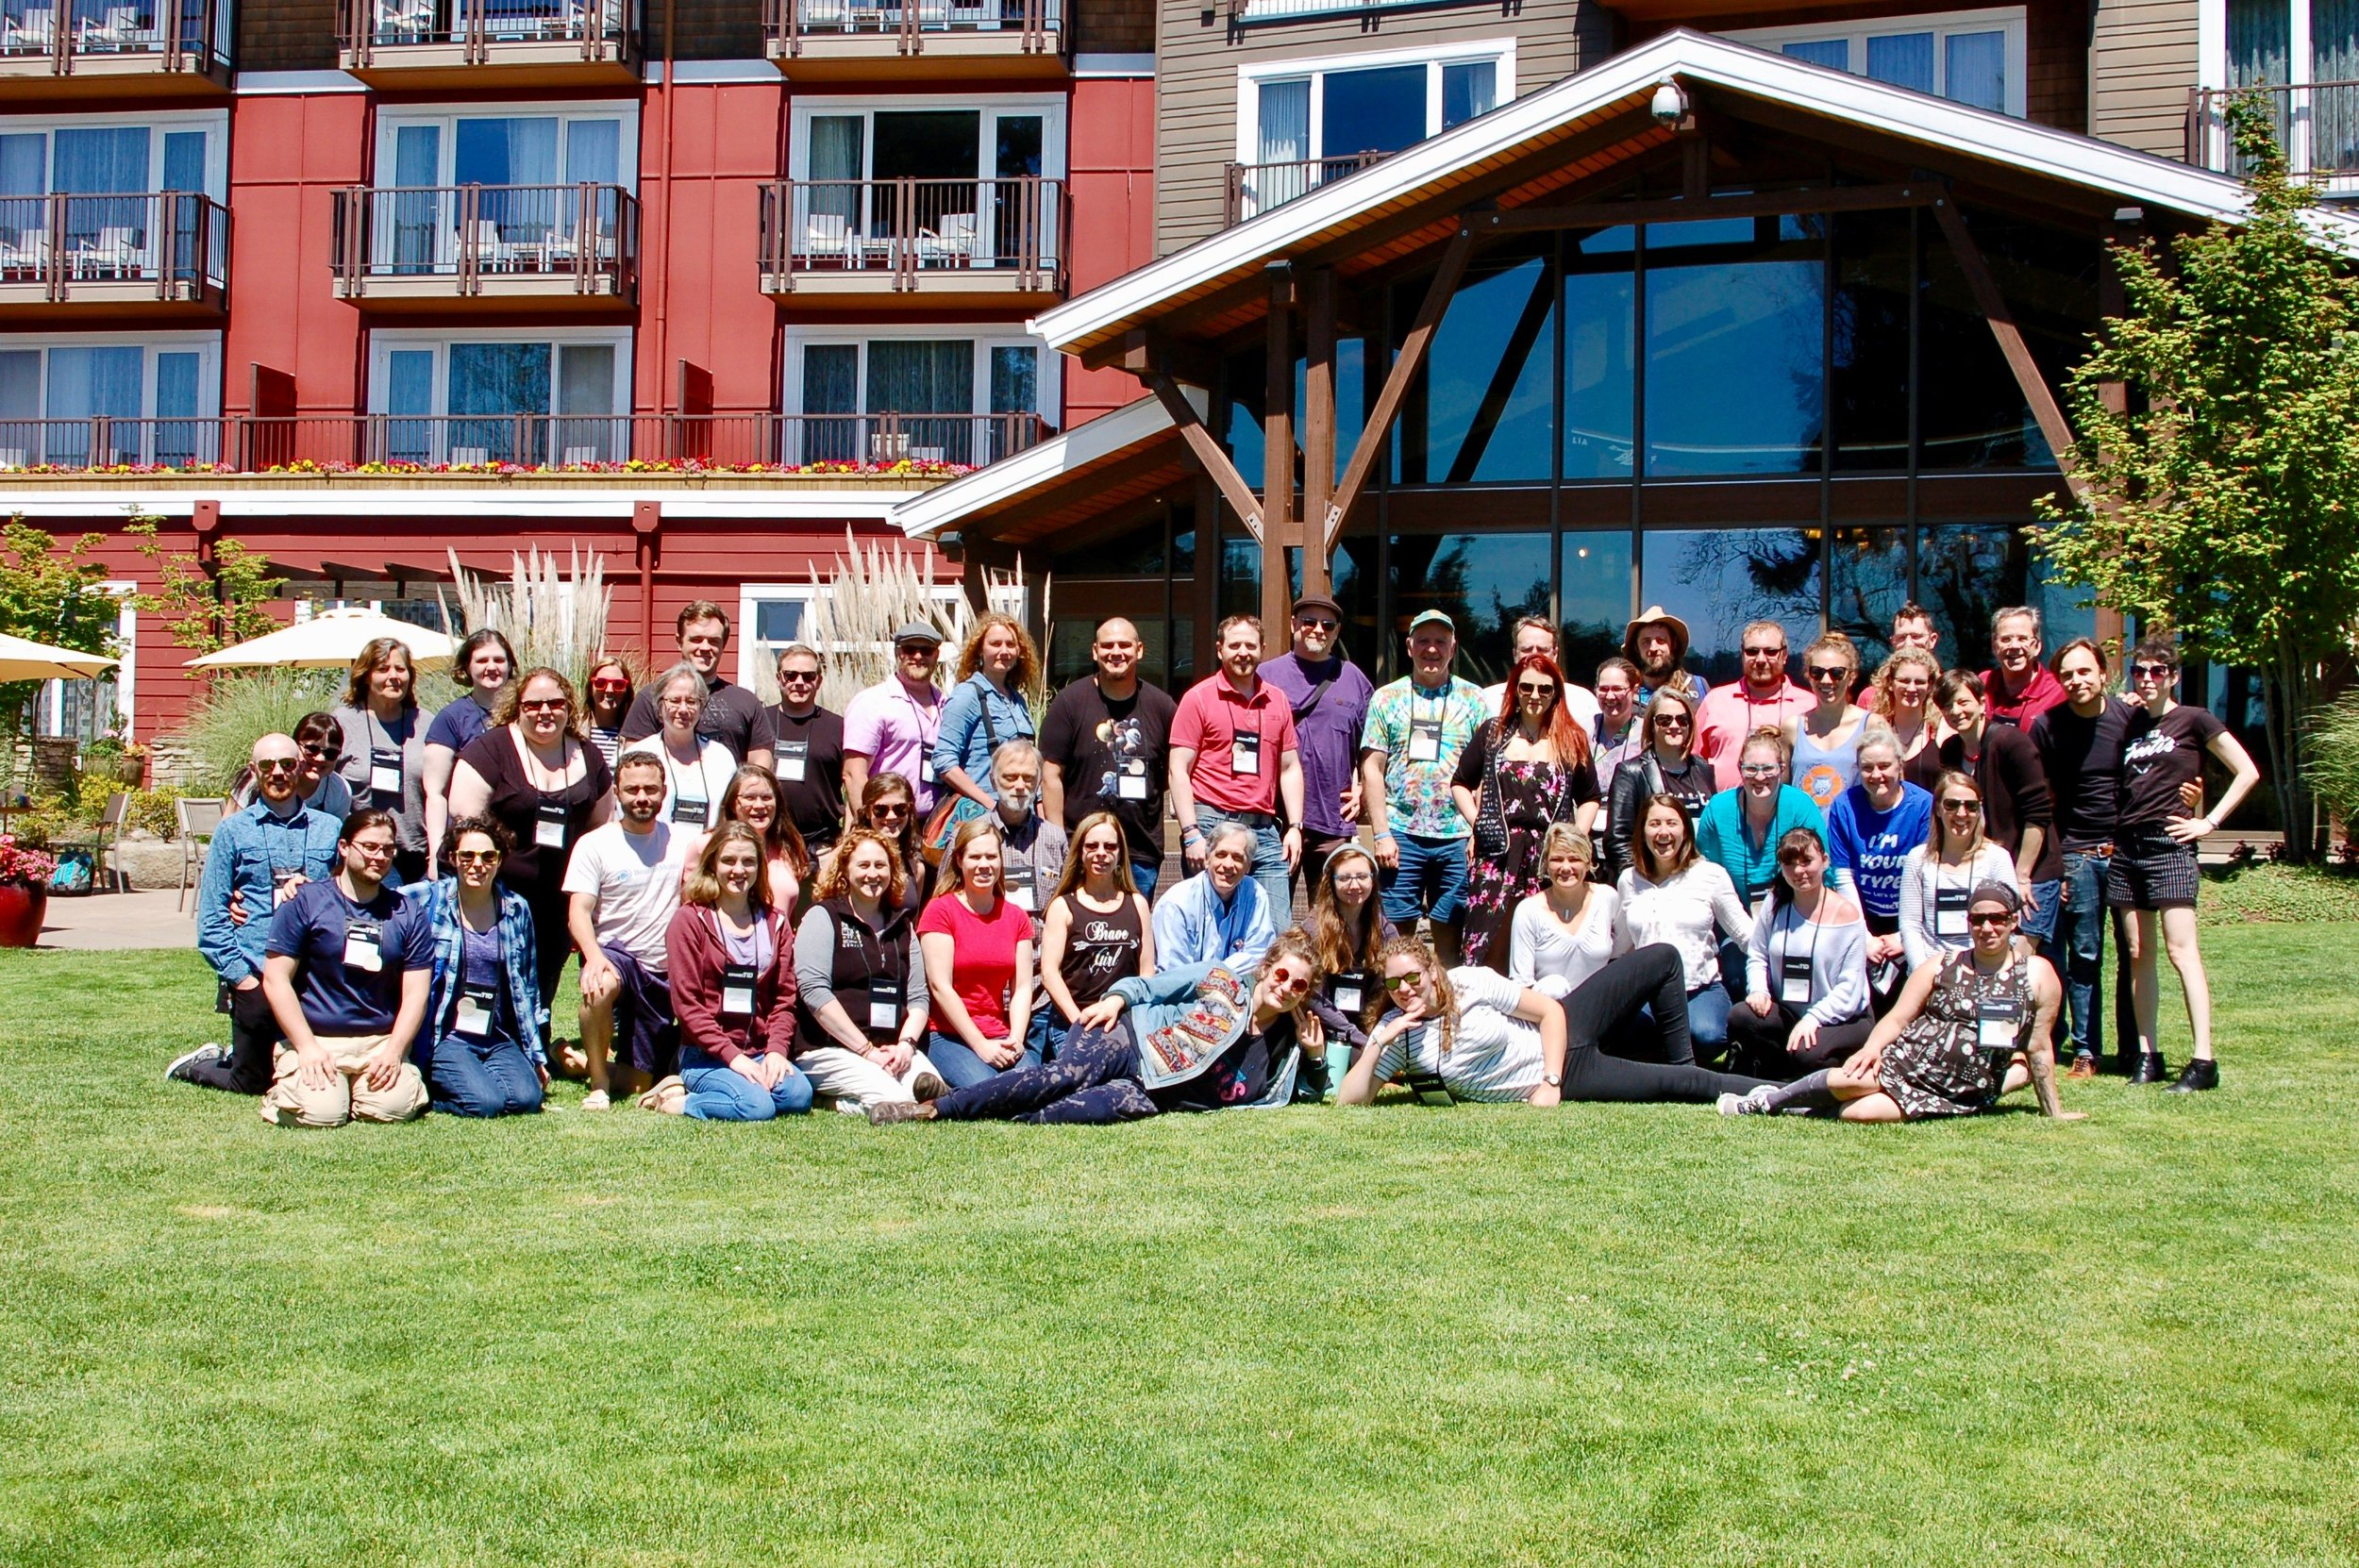 Adult Retreat - June 22 - 23, 2019Clearwater Resort in Suquamish, WAThe ConnecT1D Adult Retreat is all about tapping into a community of people who get you.Click here for more information